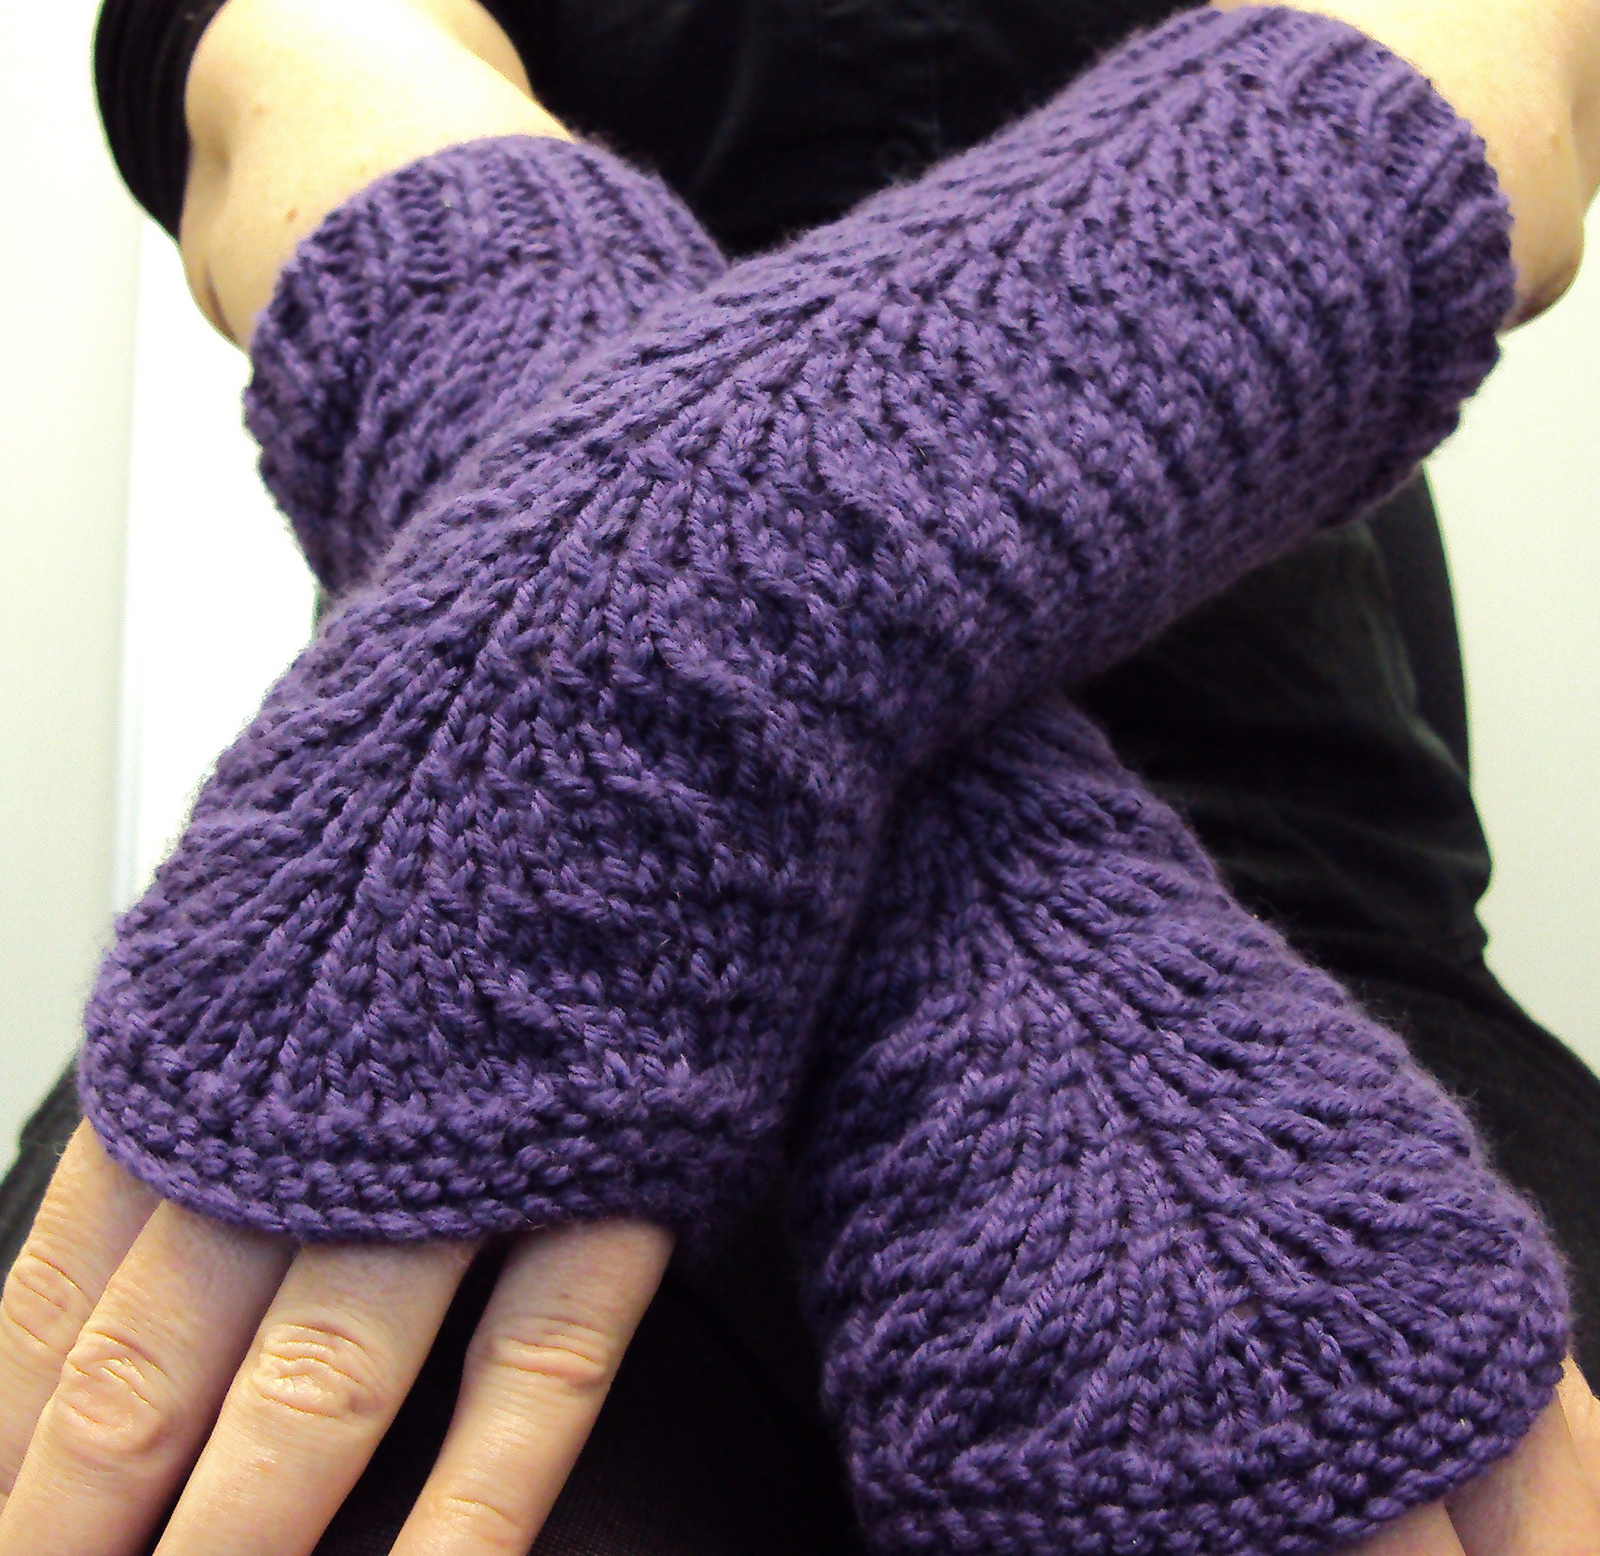 Free Knitting Pattern for Easy Lana's Gloves